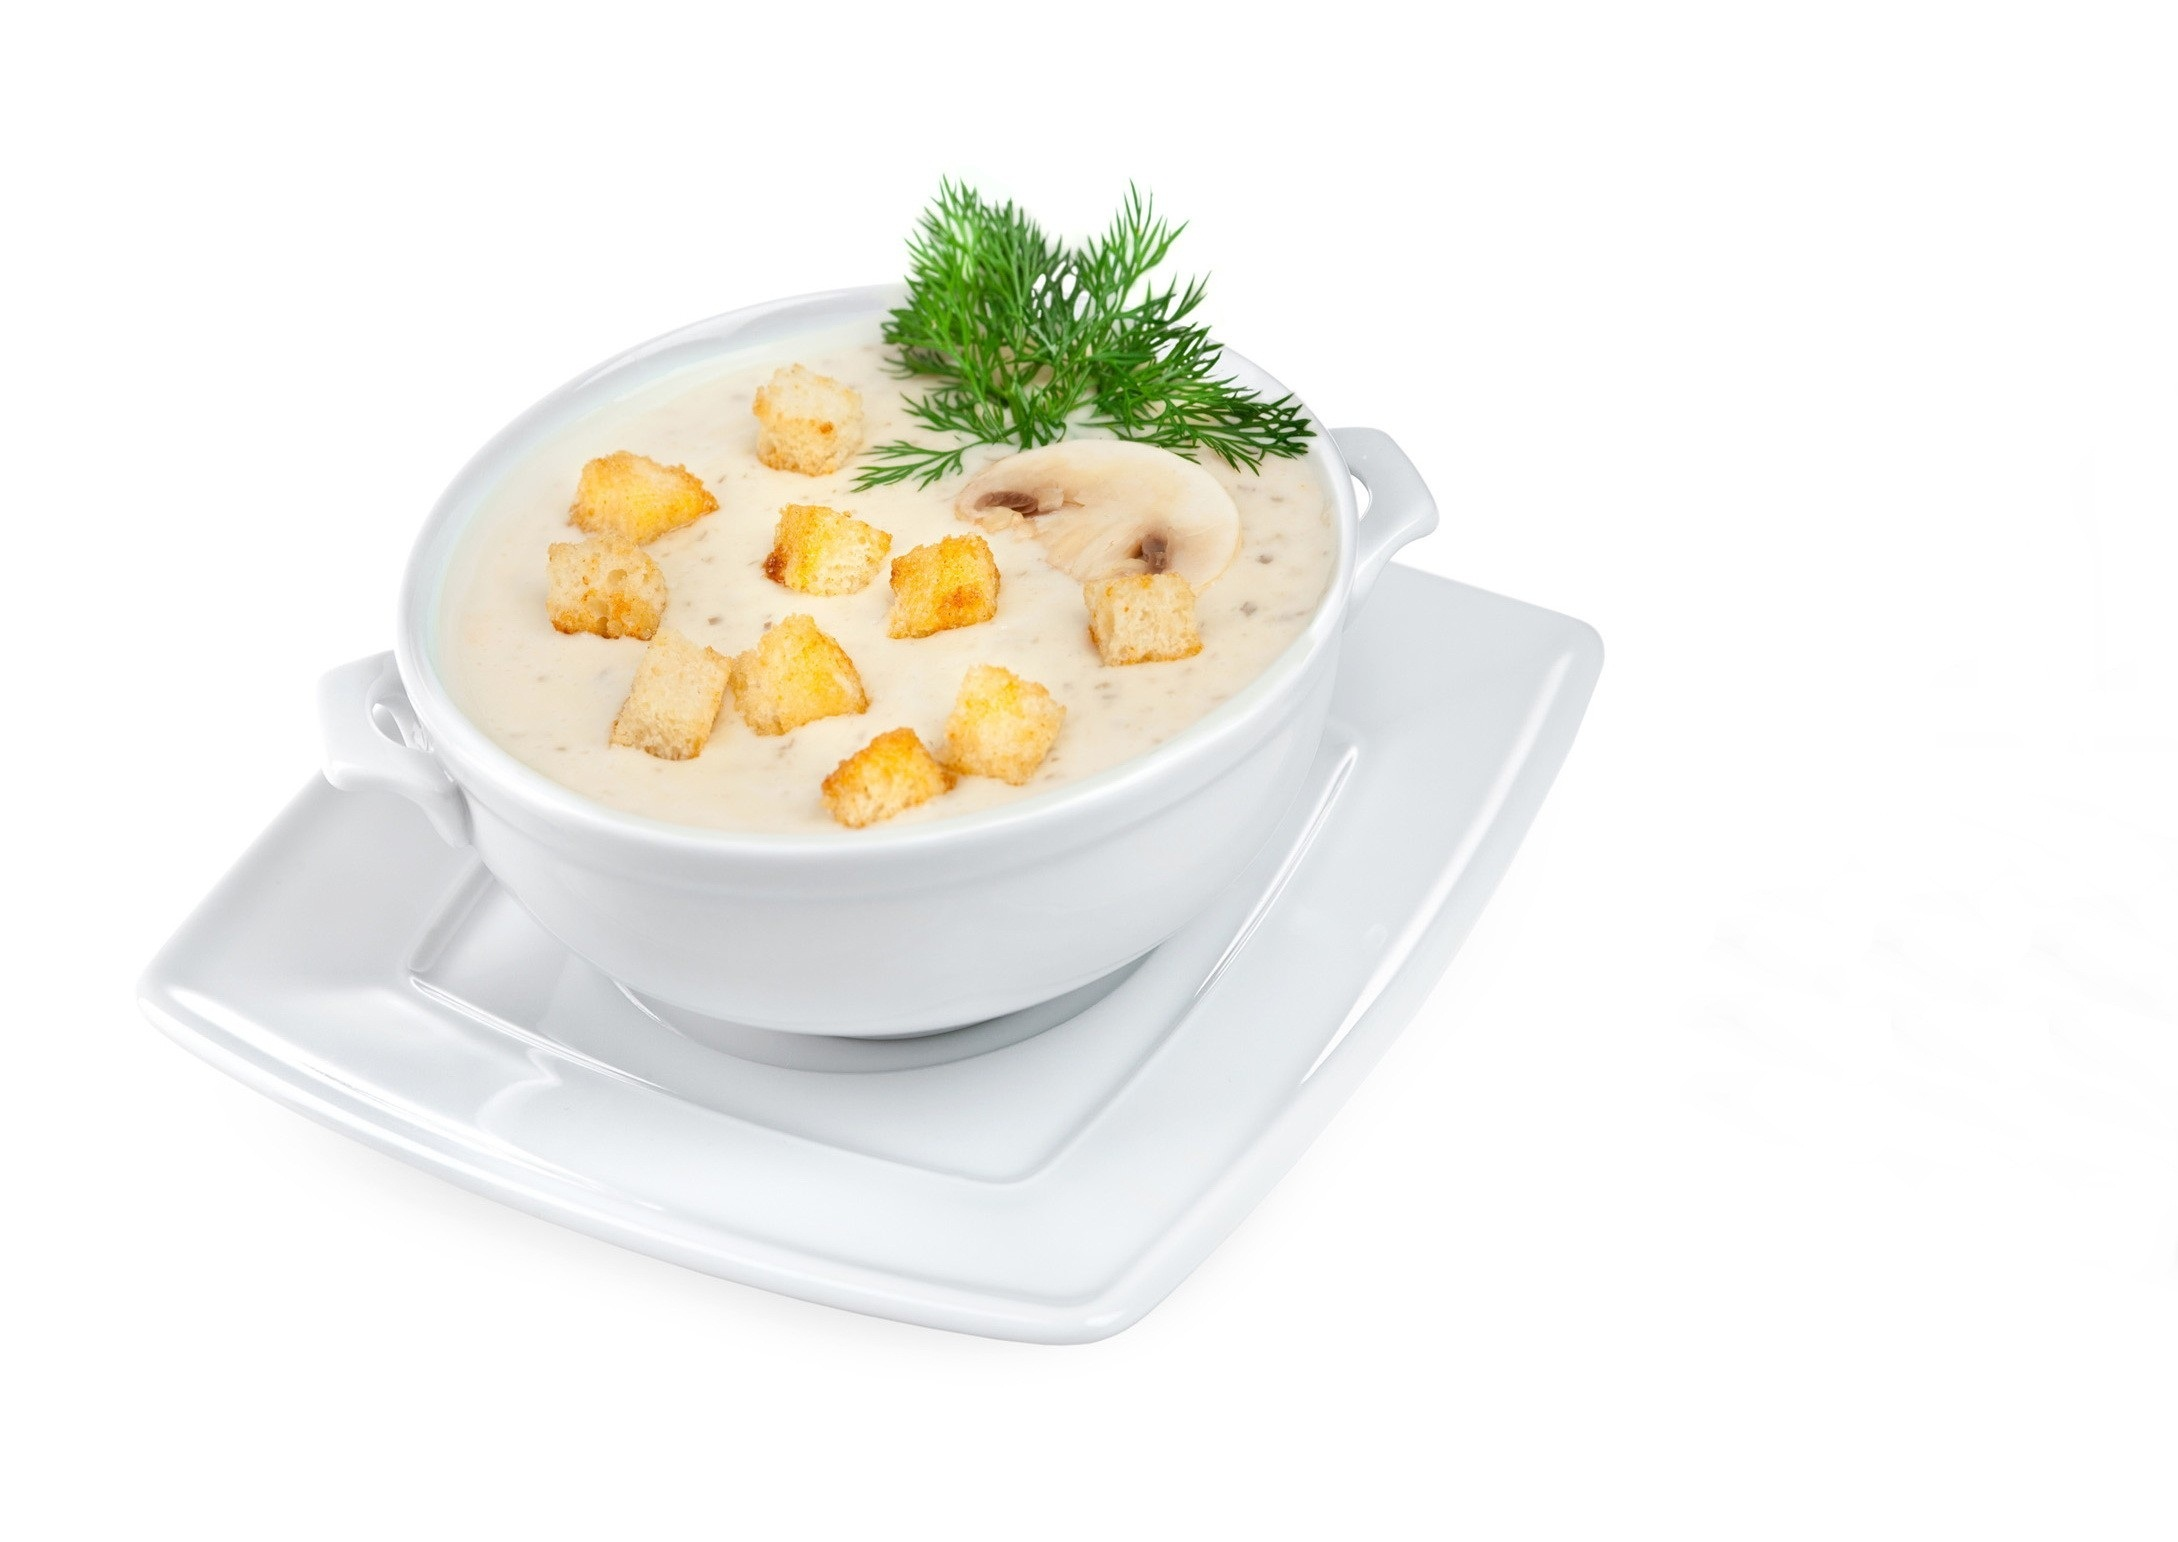 Soup HD Wallpaper Background Image 2178x1542 ID402478 2178x1542